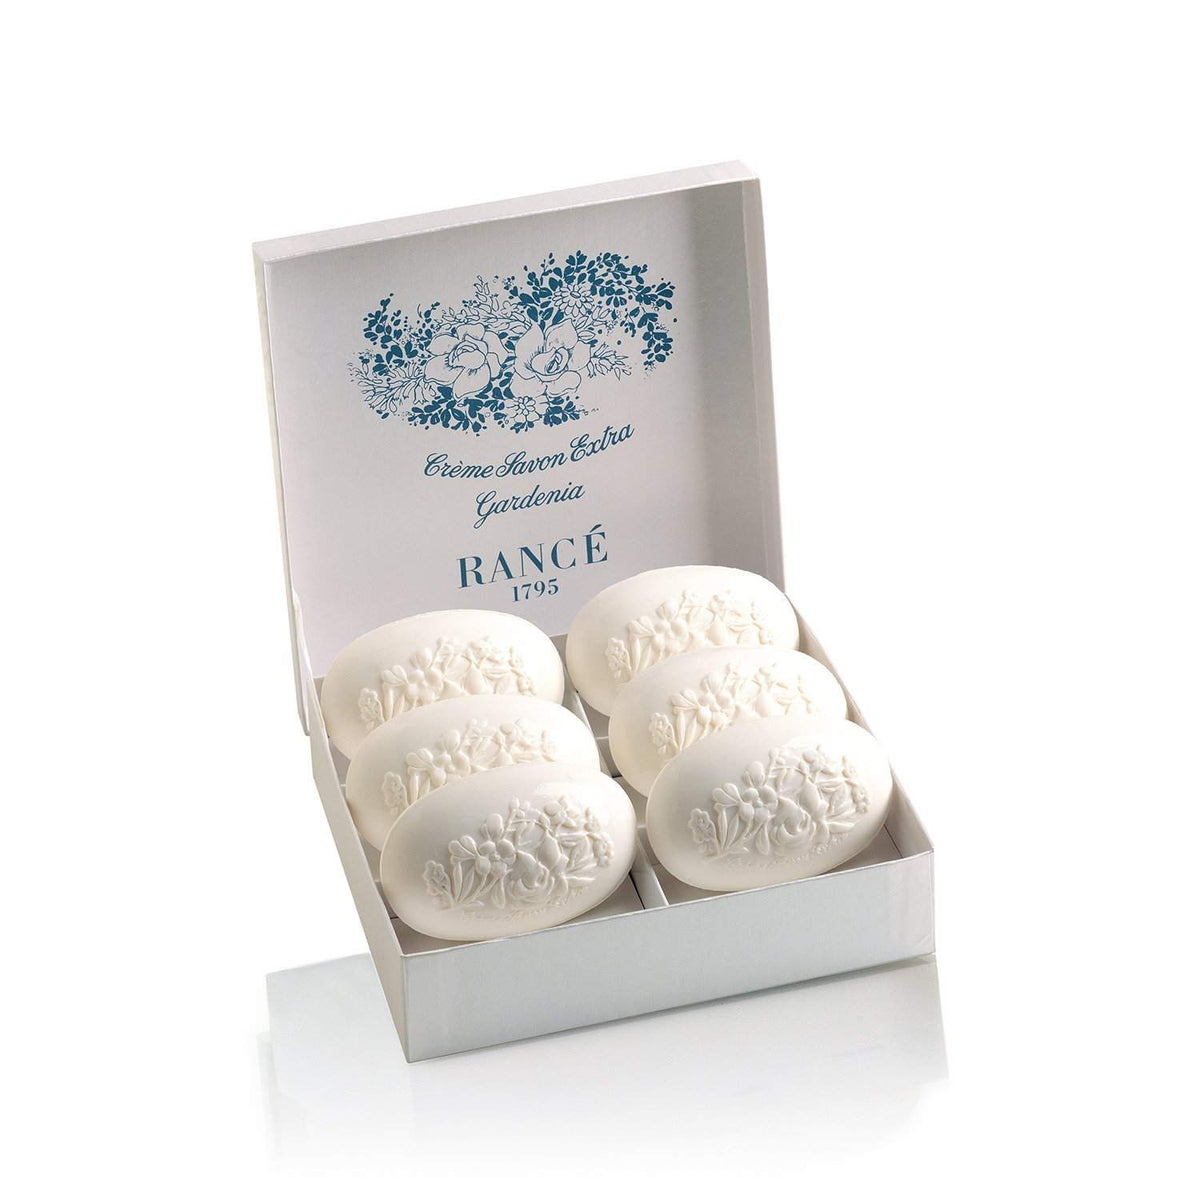 Rance Soaps Gardenia Soap Box-Rance Soaps-Oak Manor Fragrances